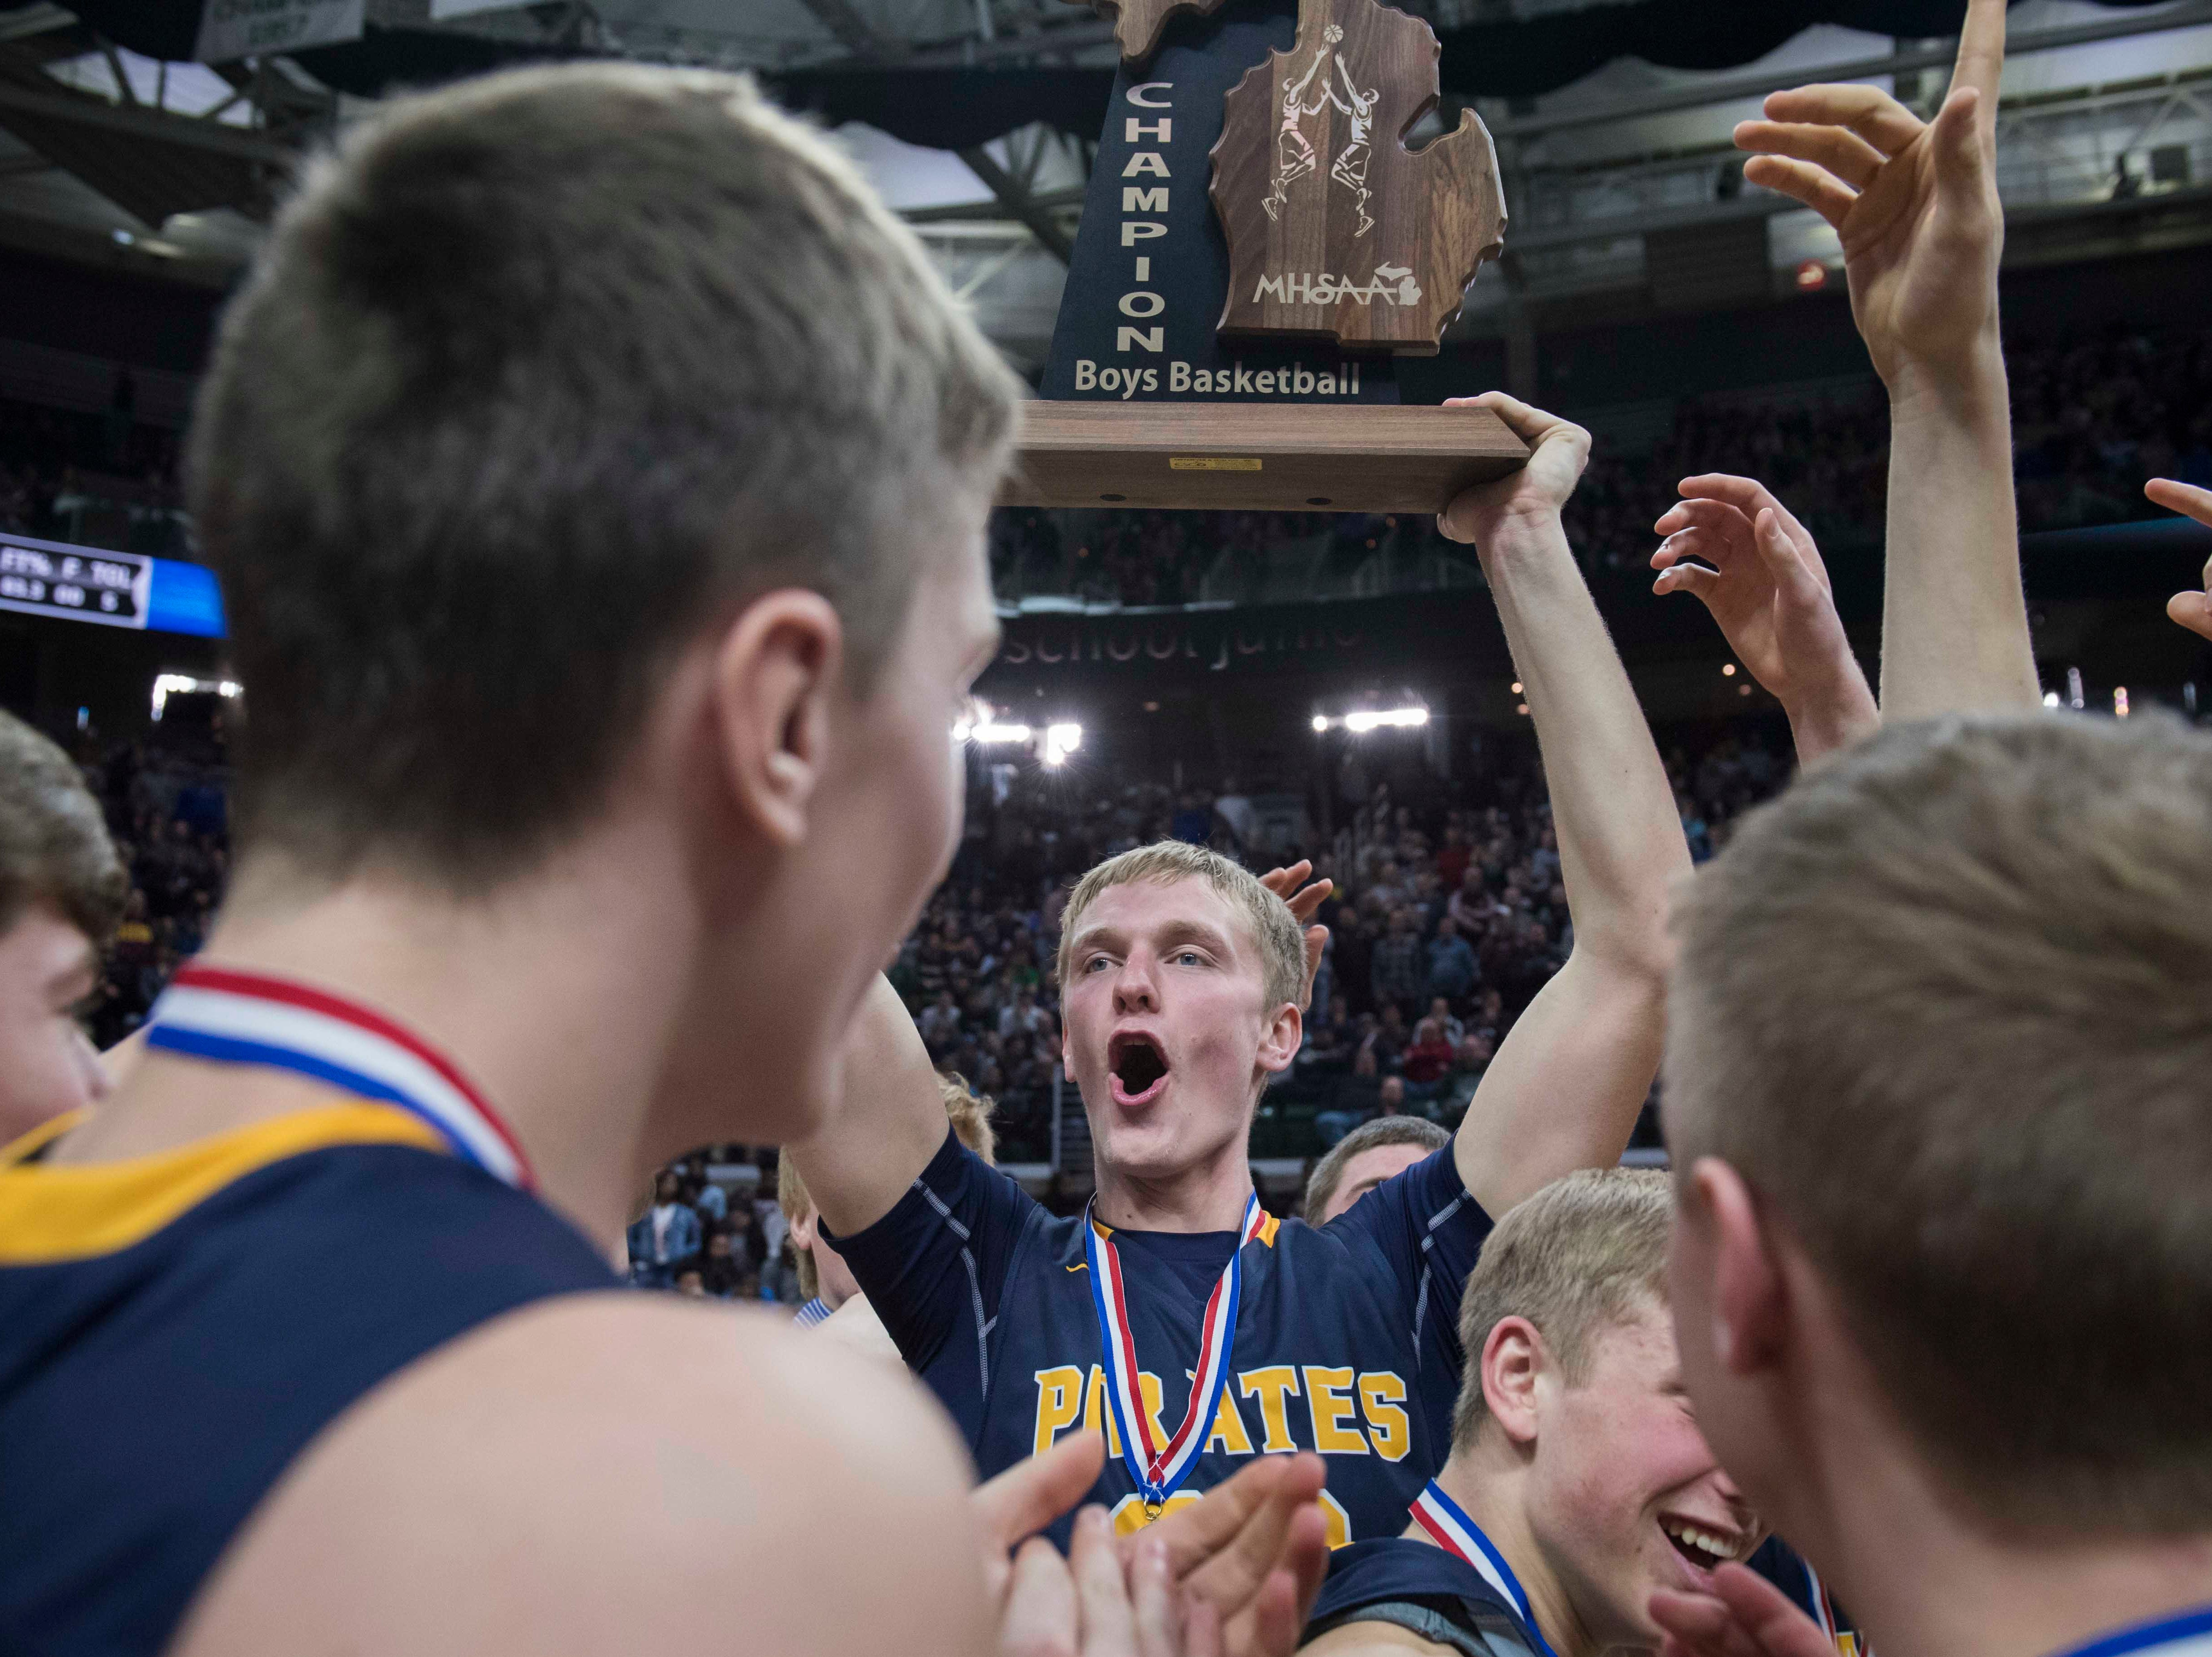 Pewamo-Westphalia's Andre Smith hoists the Div. 3 trophy after the game.